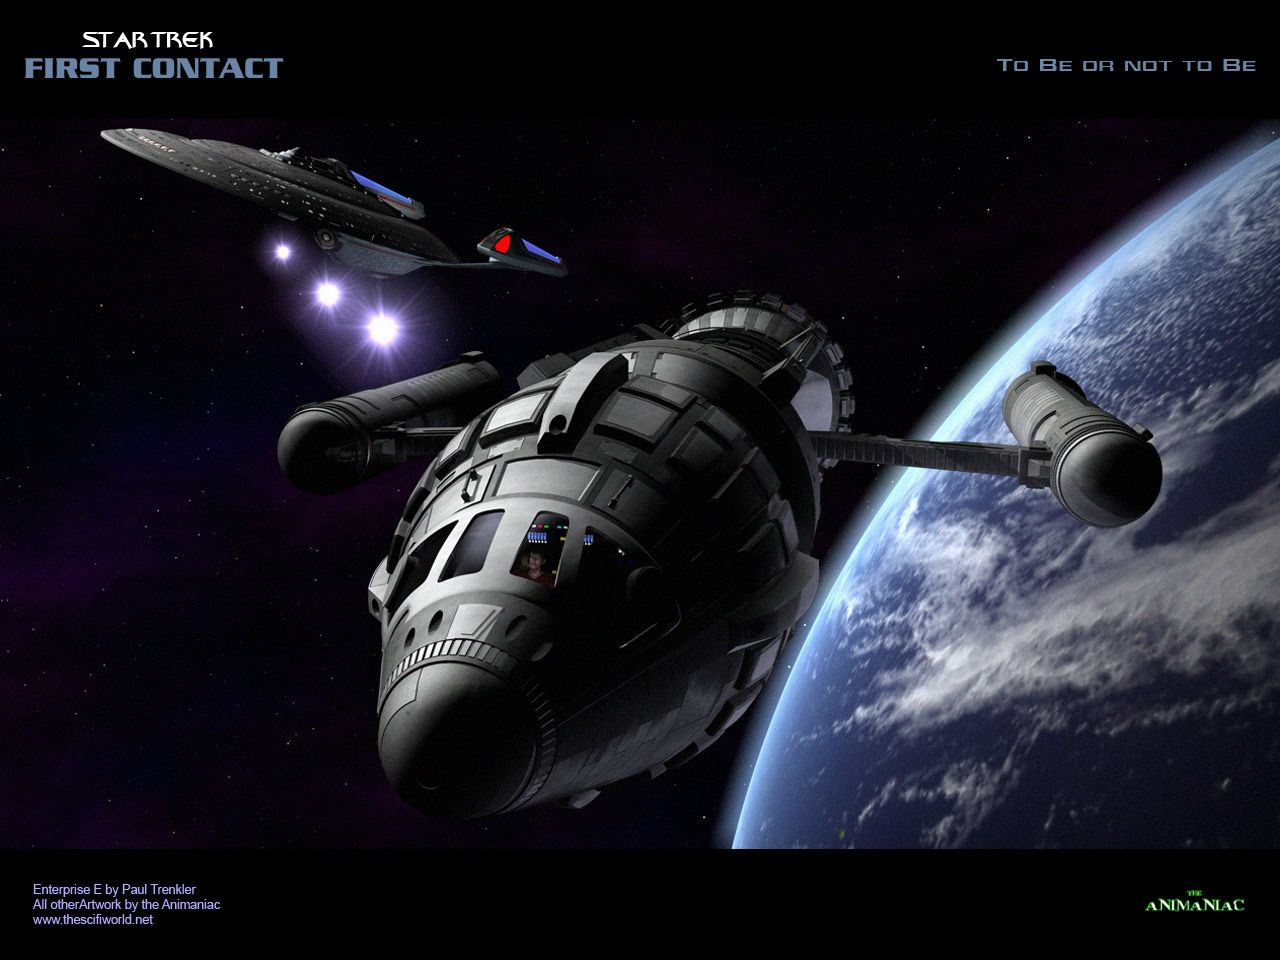 Download Star Trek Movies Wallpaper Star Trek First Contact